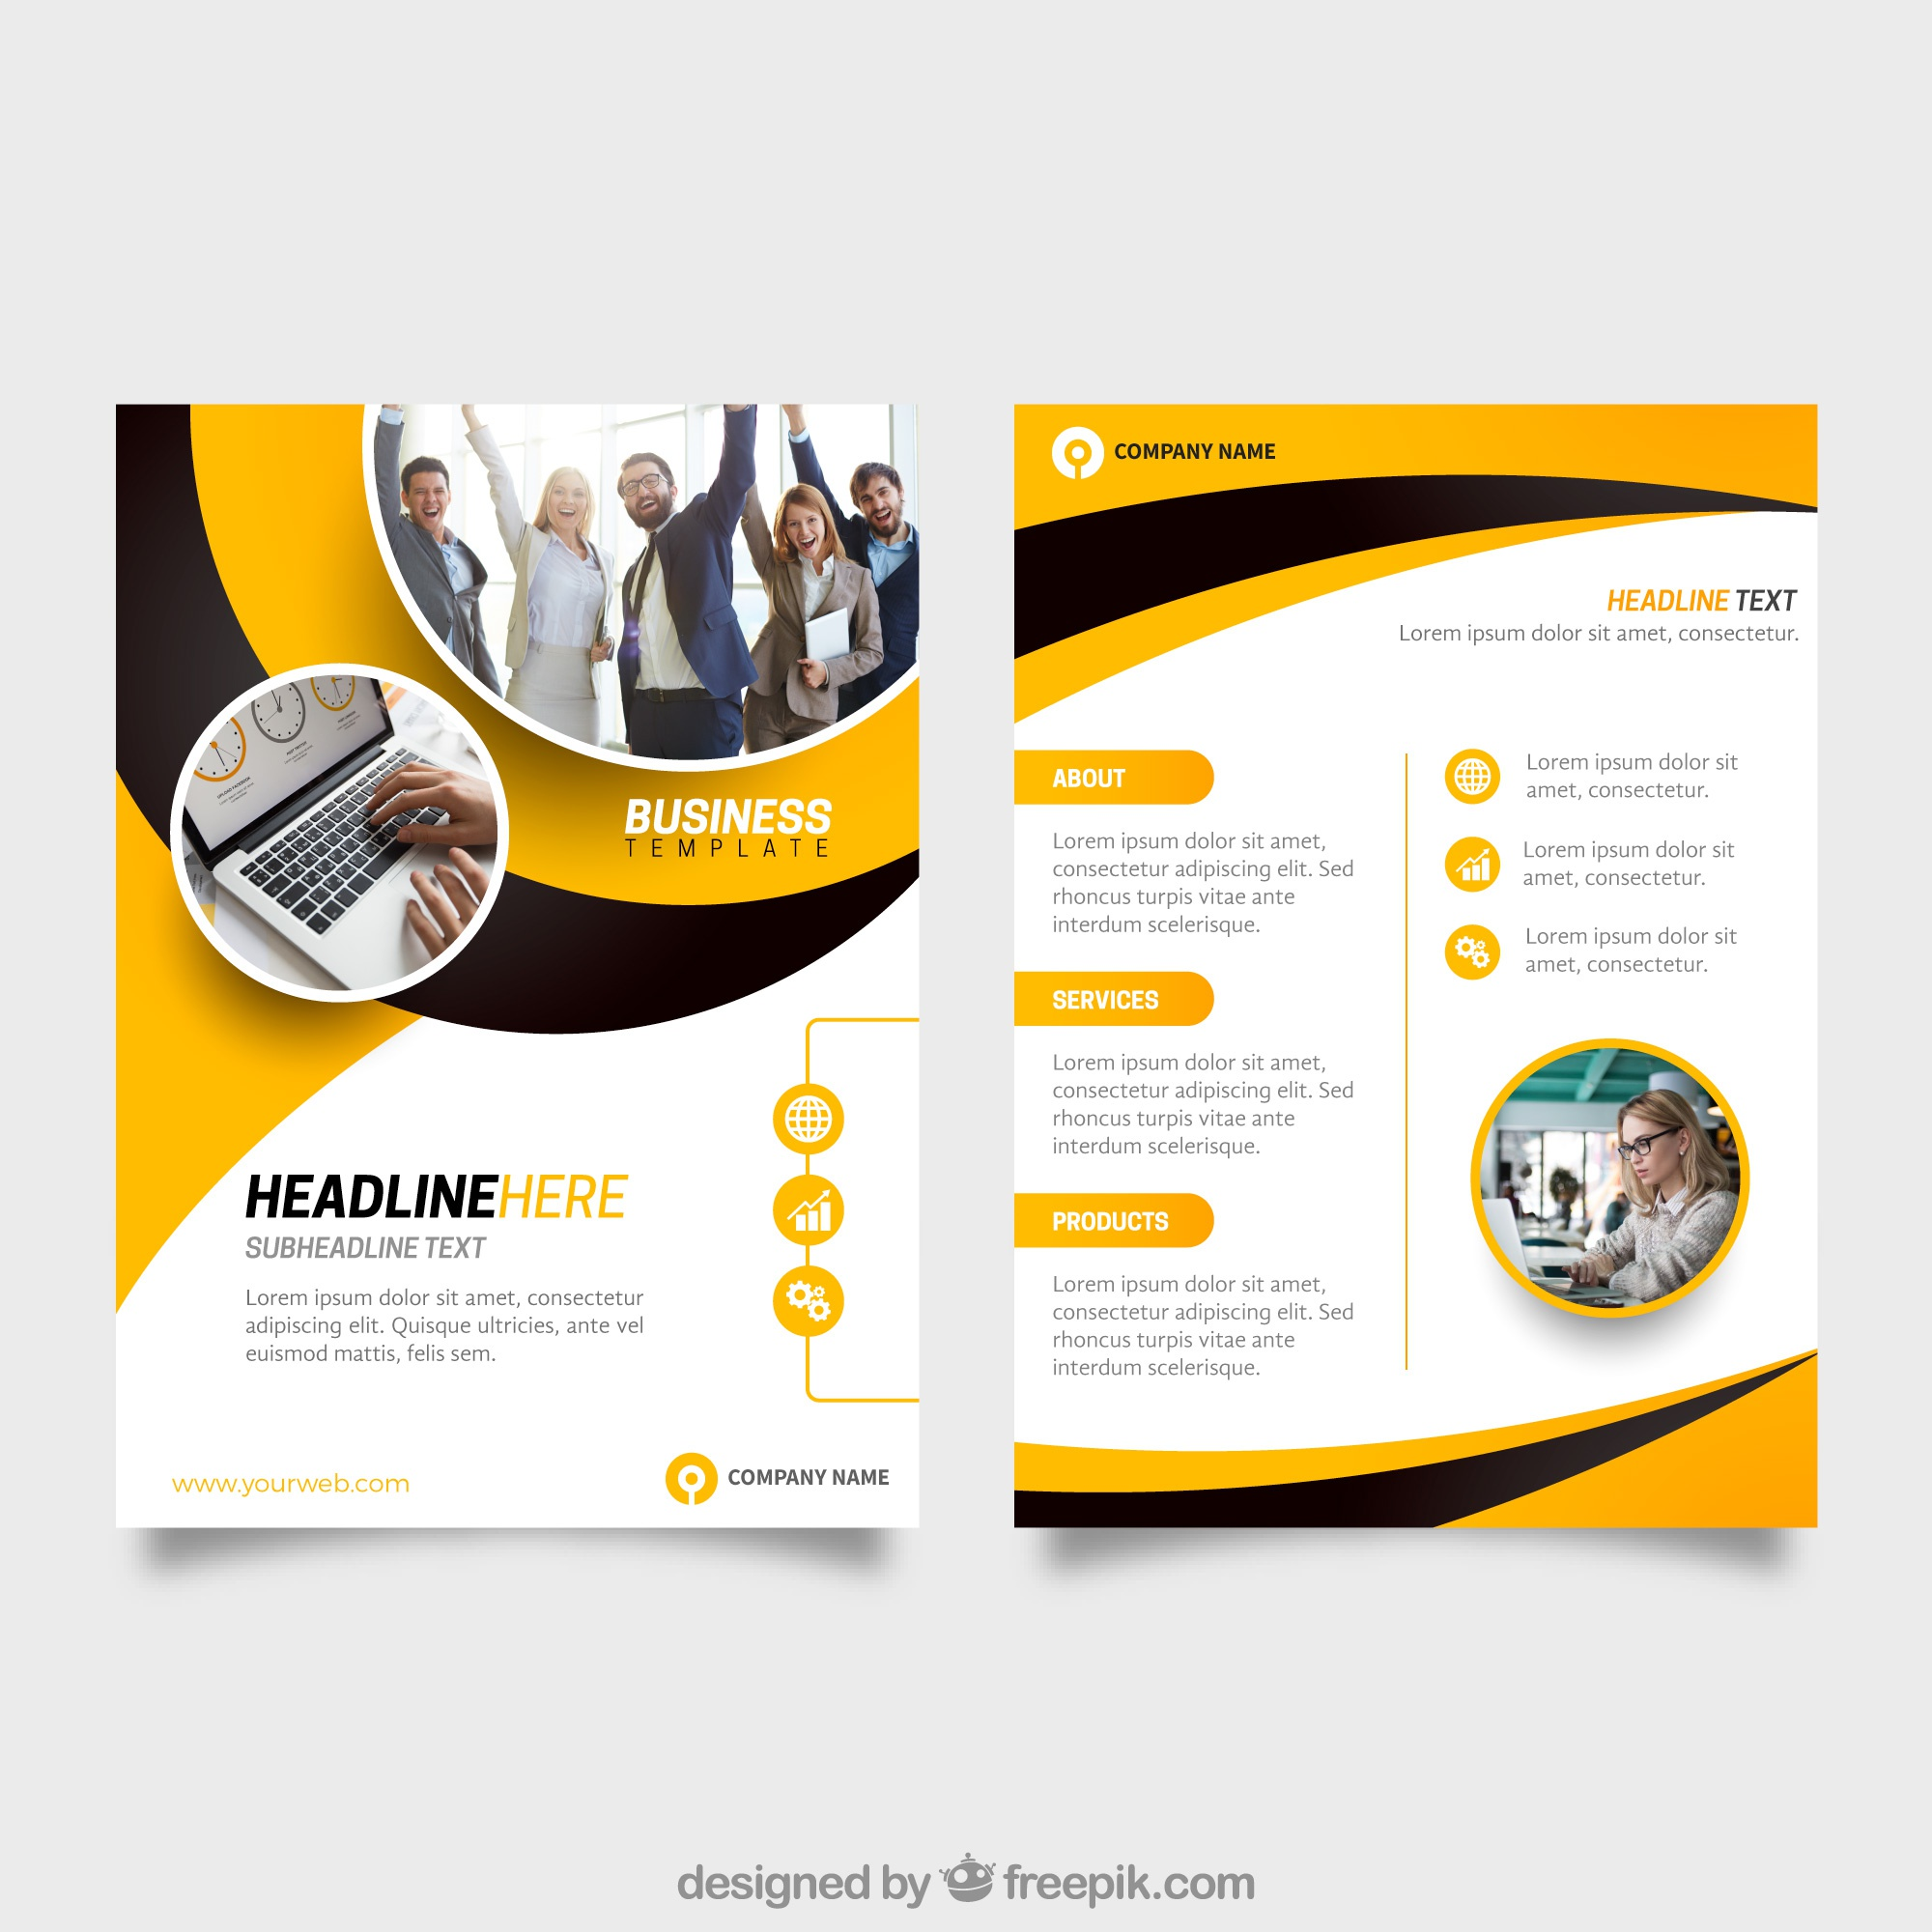 Templates vectors 231200 free files in eps format yellow and black business flyer template accmission Image collections